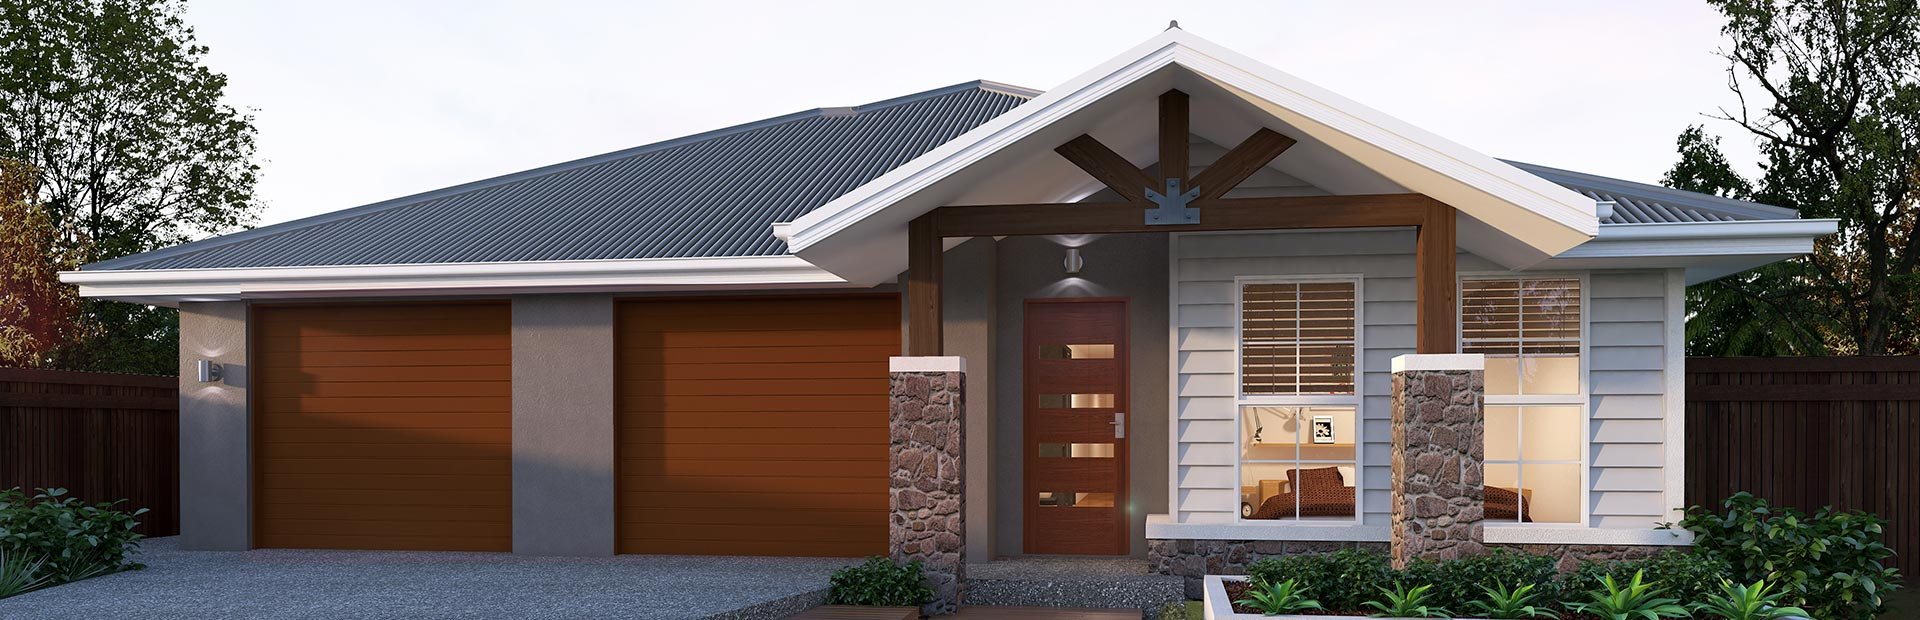 Chatham 255 Shared Living Home Design Stroud Homes New Zealand